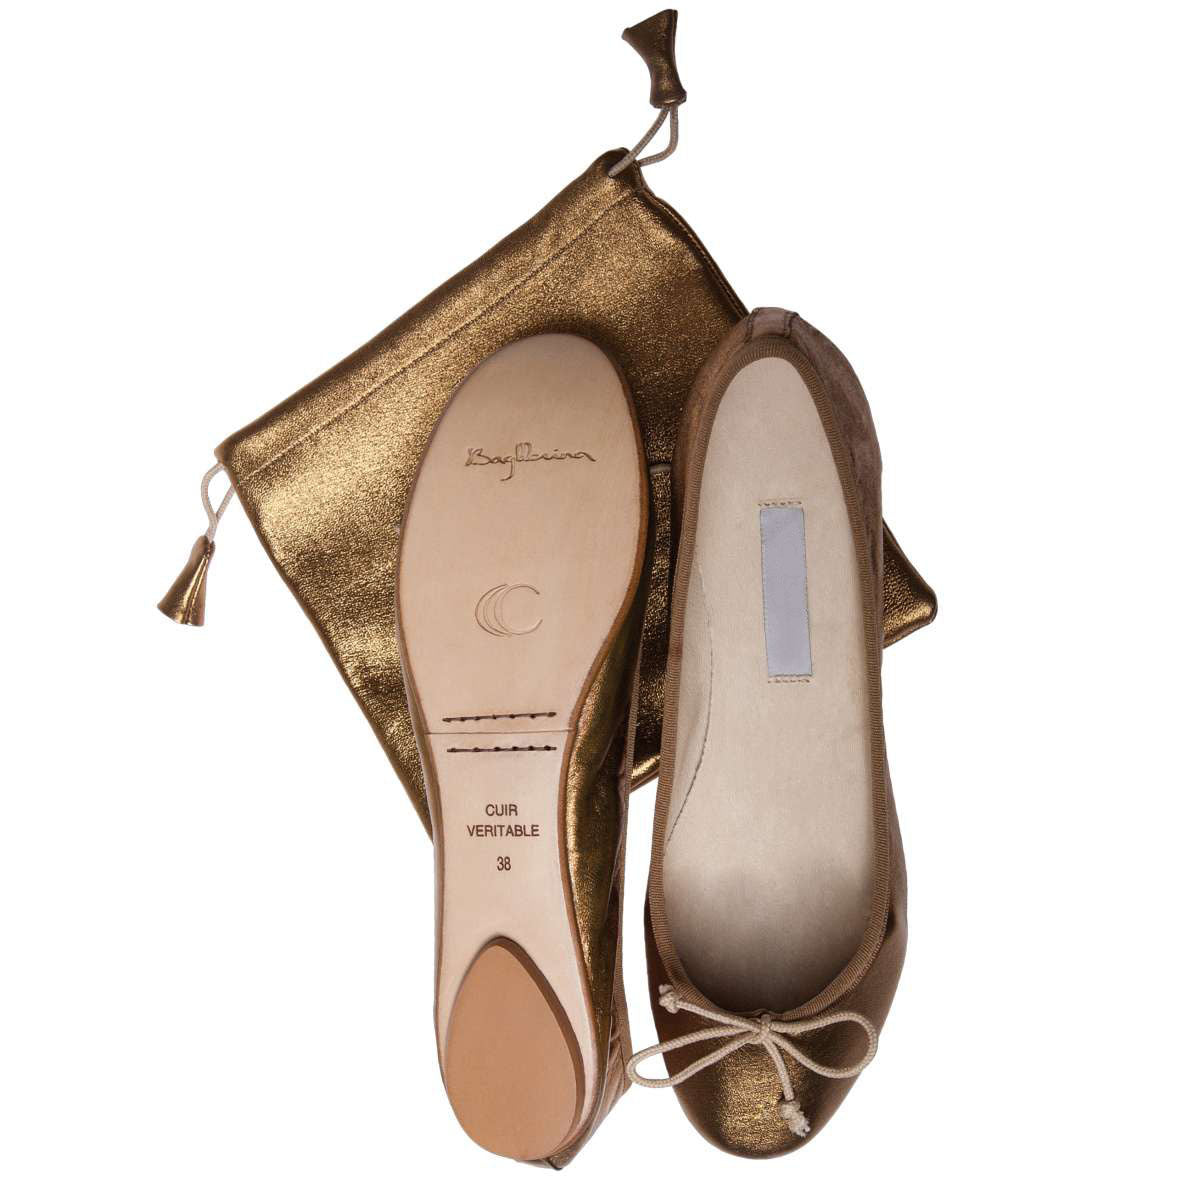 Ballet Pumps in Metallic Bronze with Carry Bag